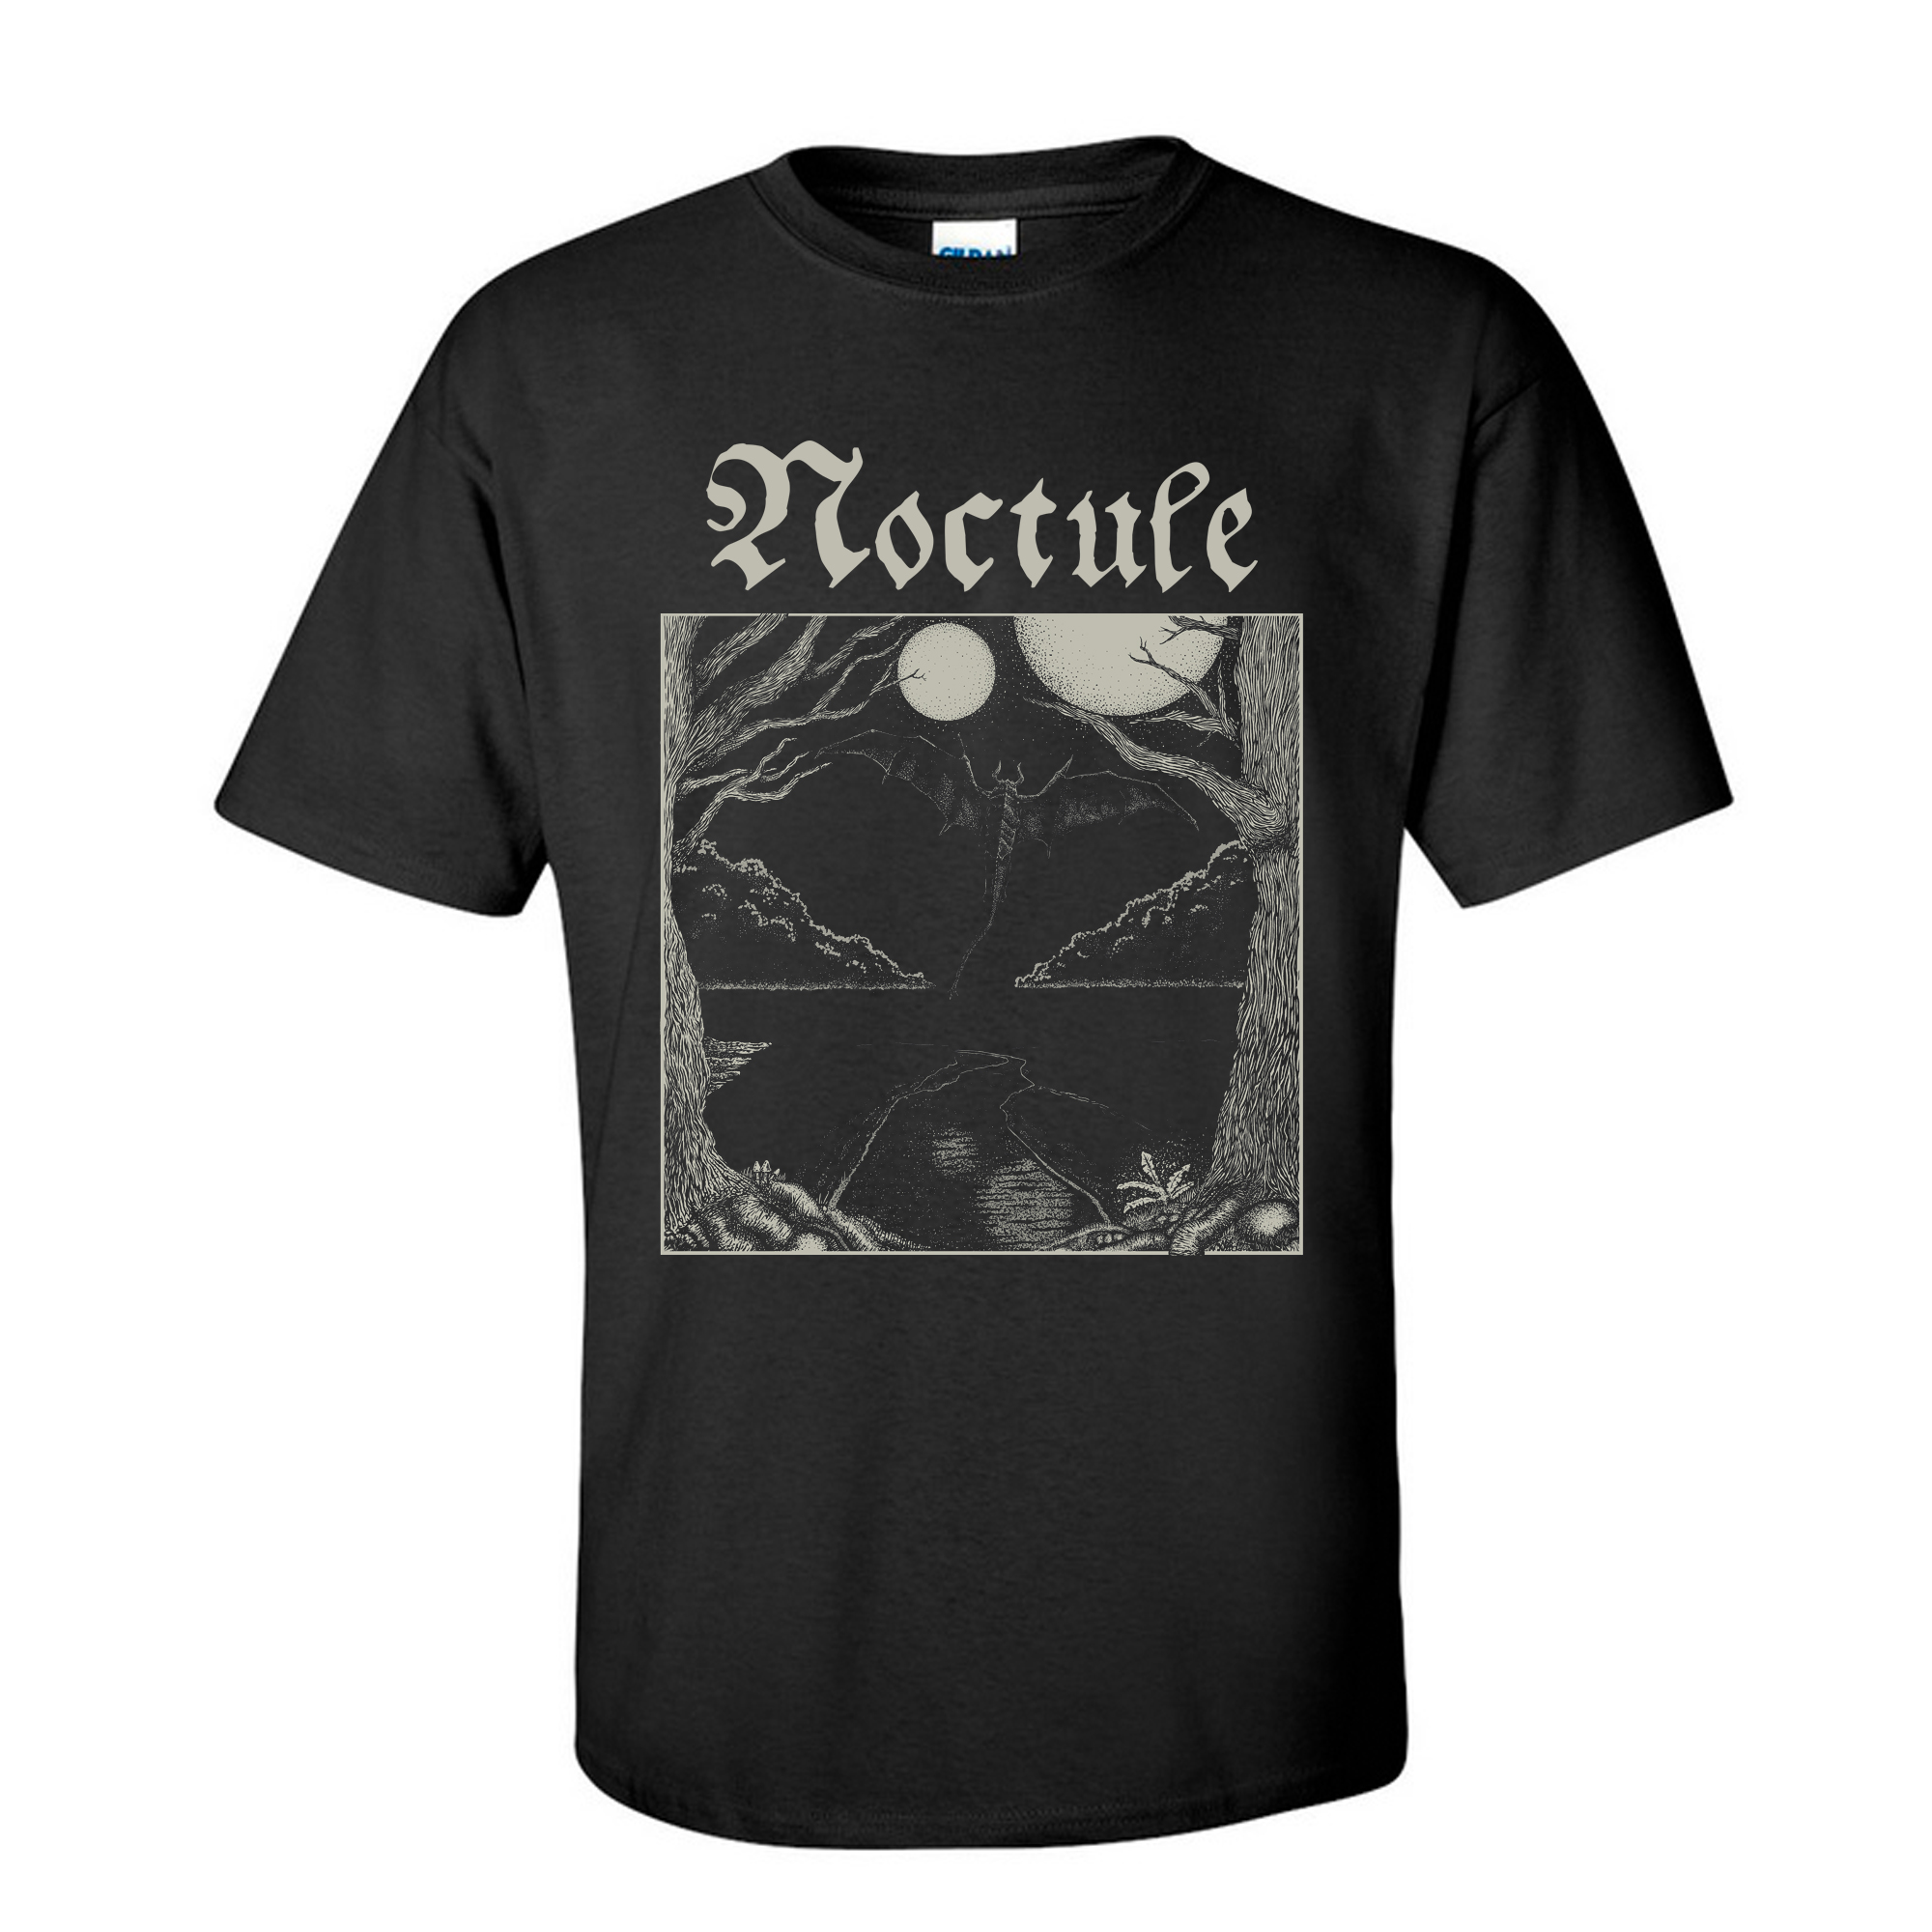 Noctule - Wretched Abyss shirt PRE-ORDER